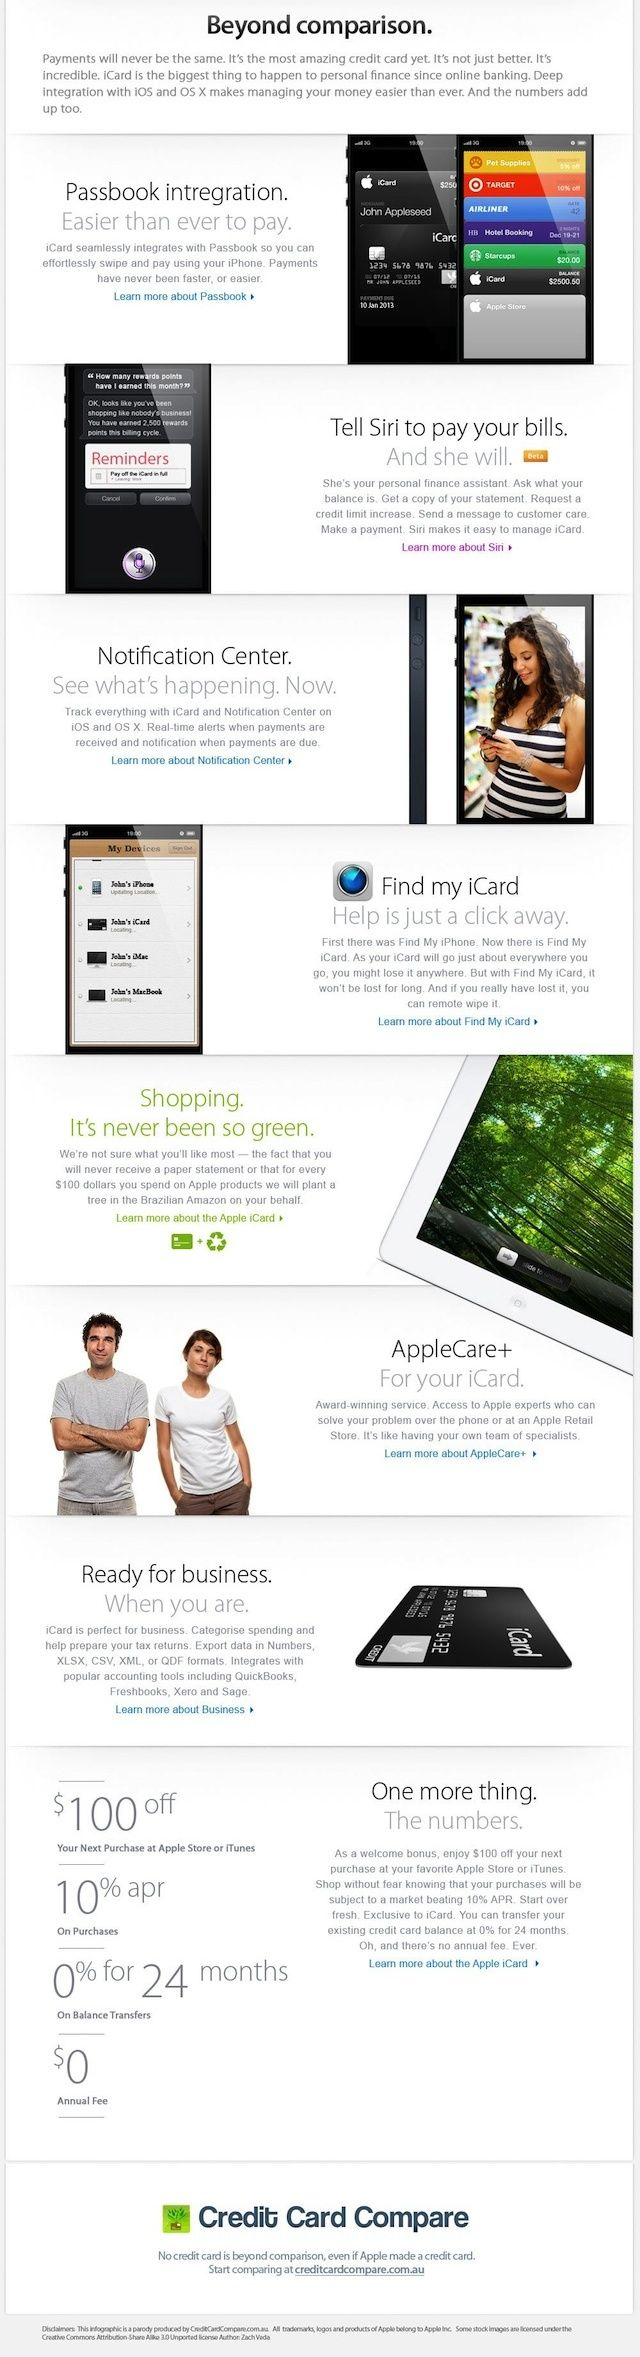 icard - iCard : la future carte de crédit Apple ?